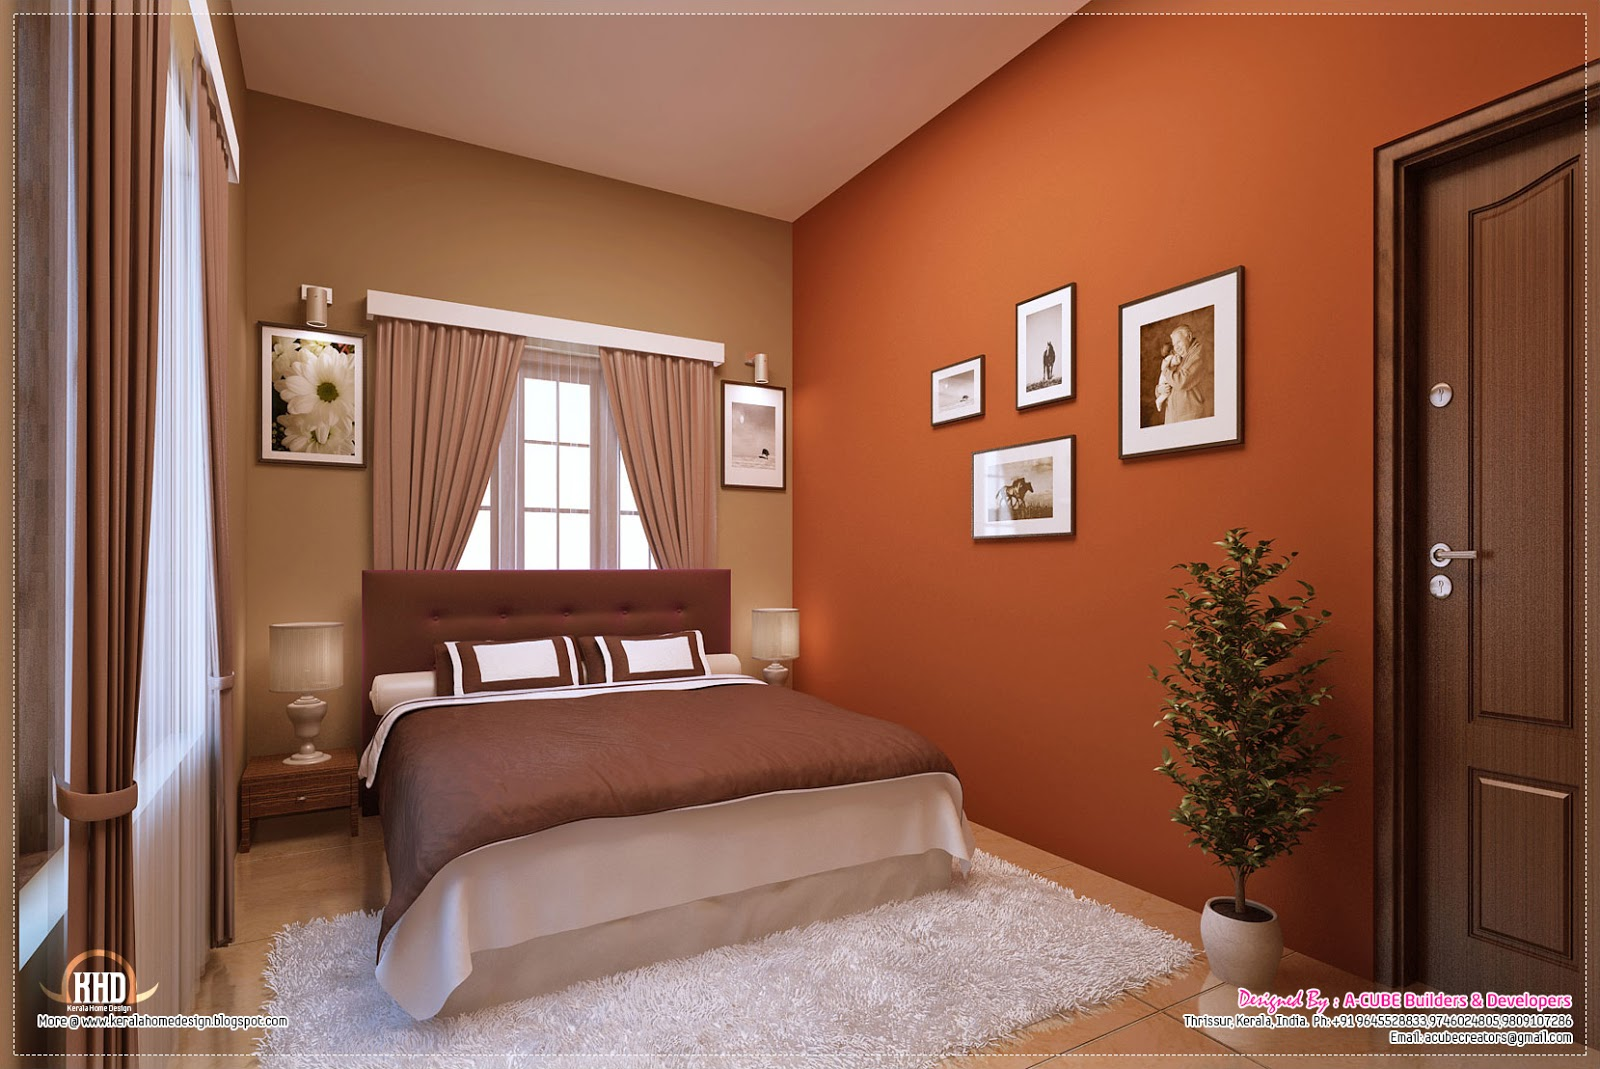 Awesome interior decoration ideas kerala home design and for Interior home design bedroom ideas